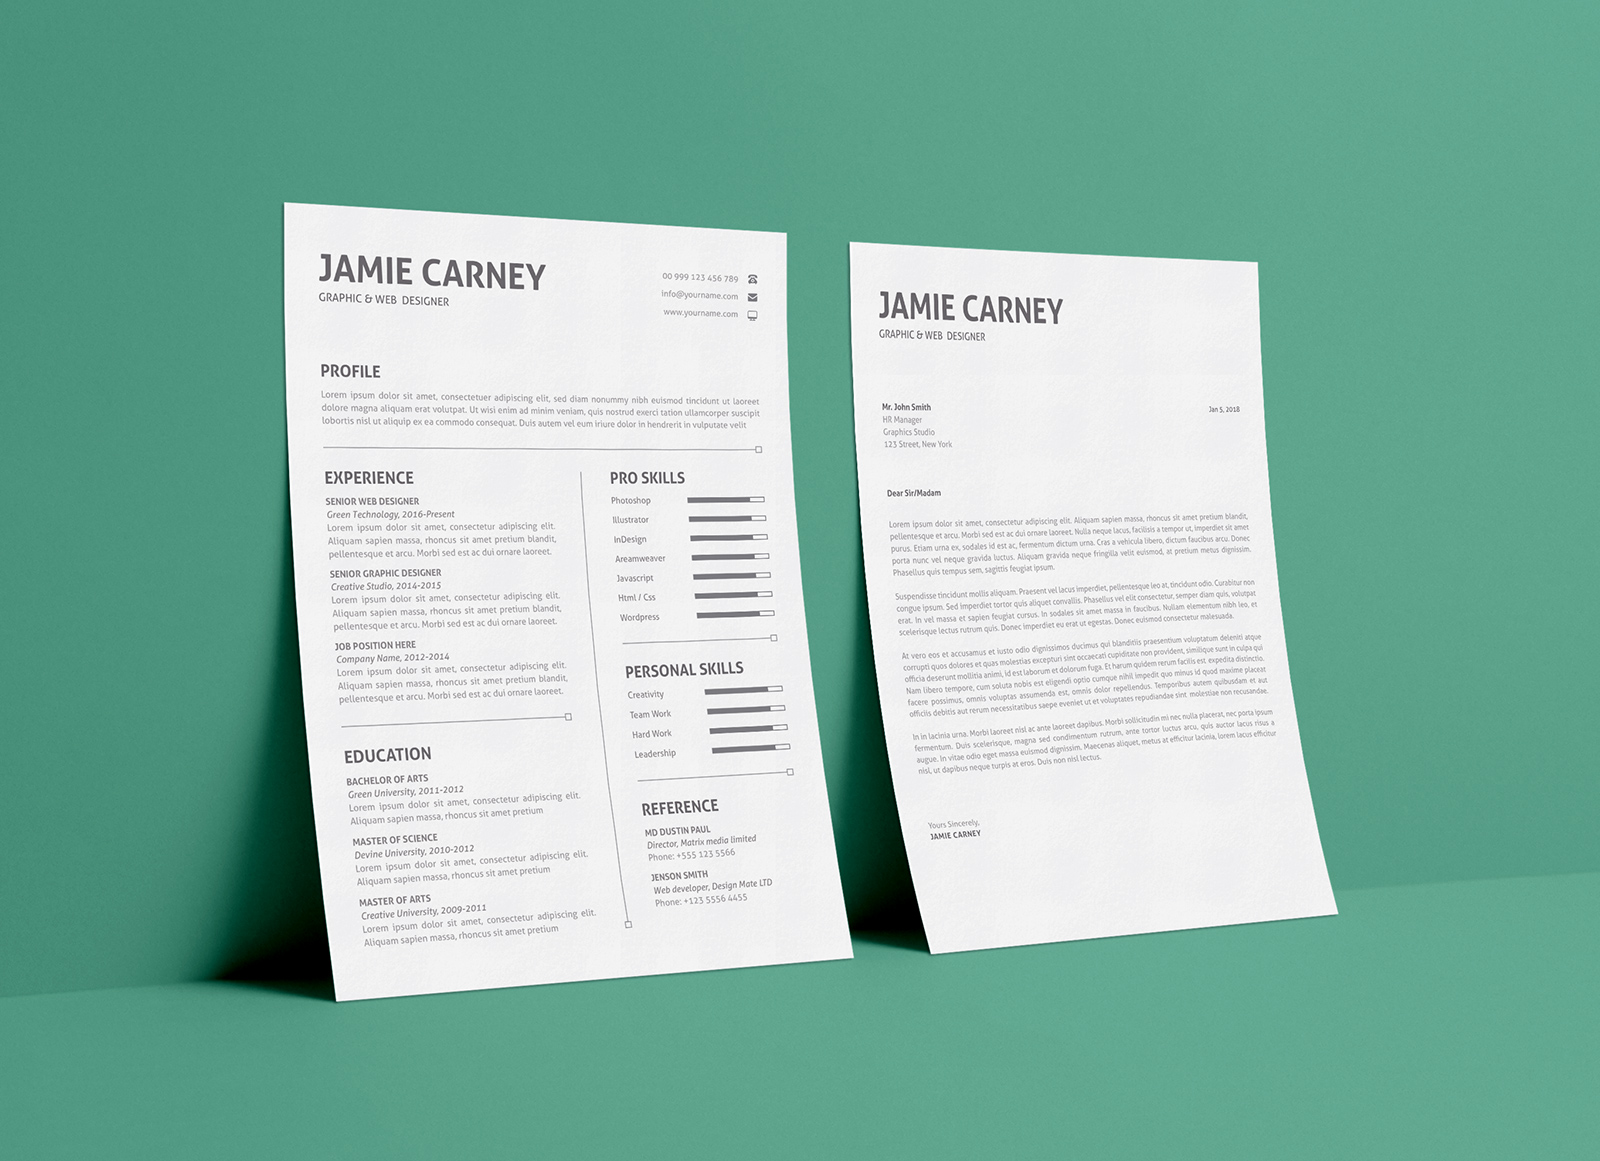 Free-Simple-Resume-Layout-Template-in-Ai,-PSD-and-Word-Format-3